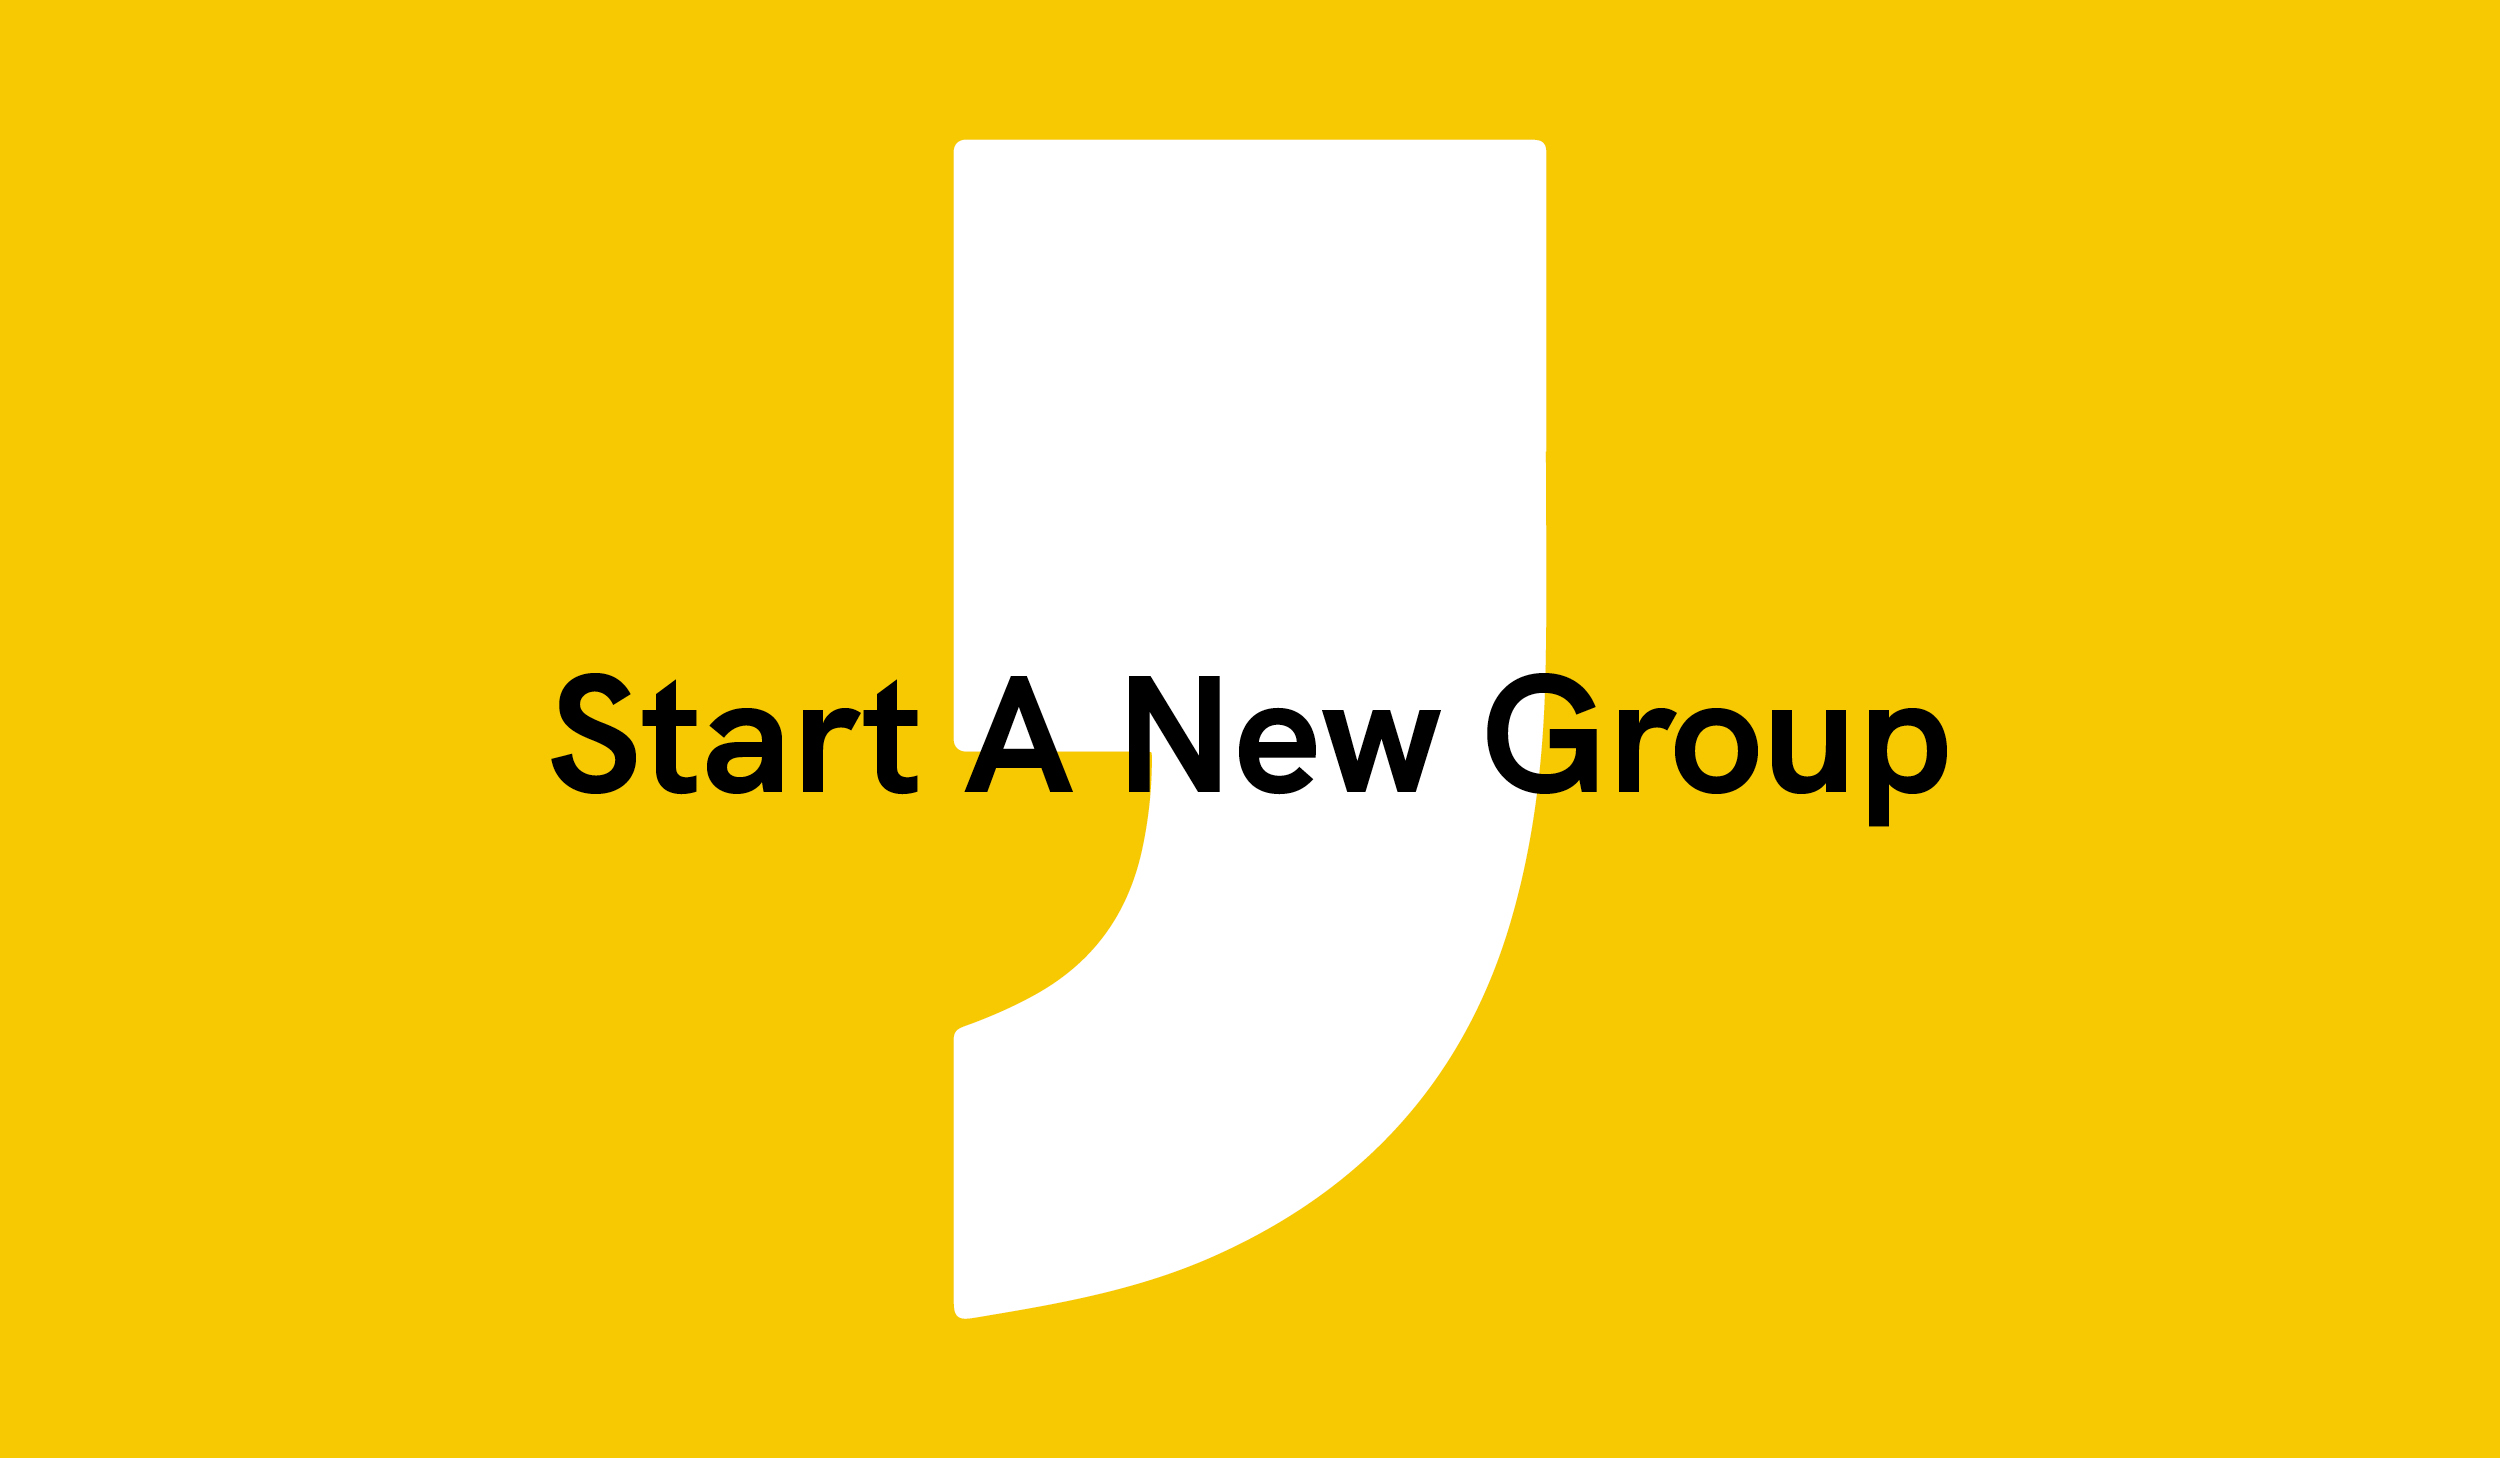 Start A New Group